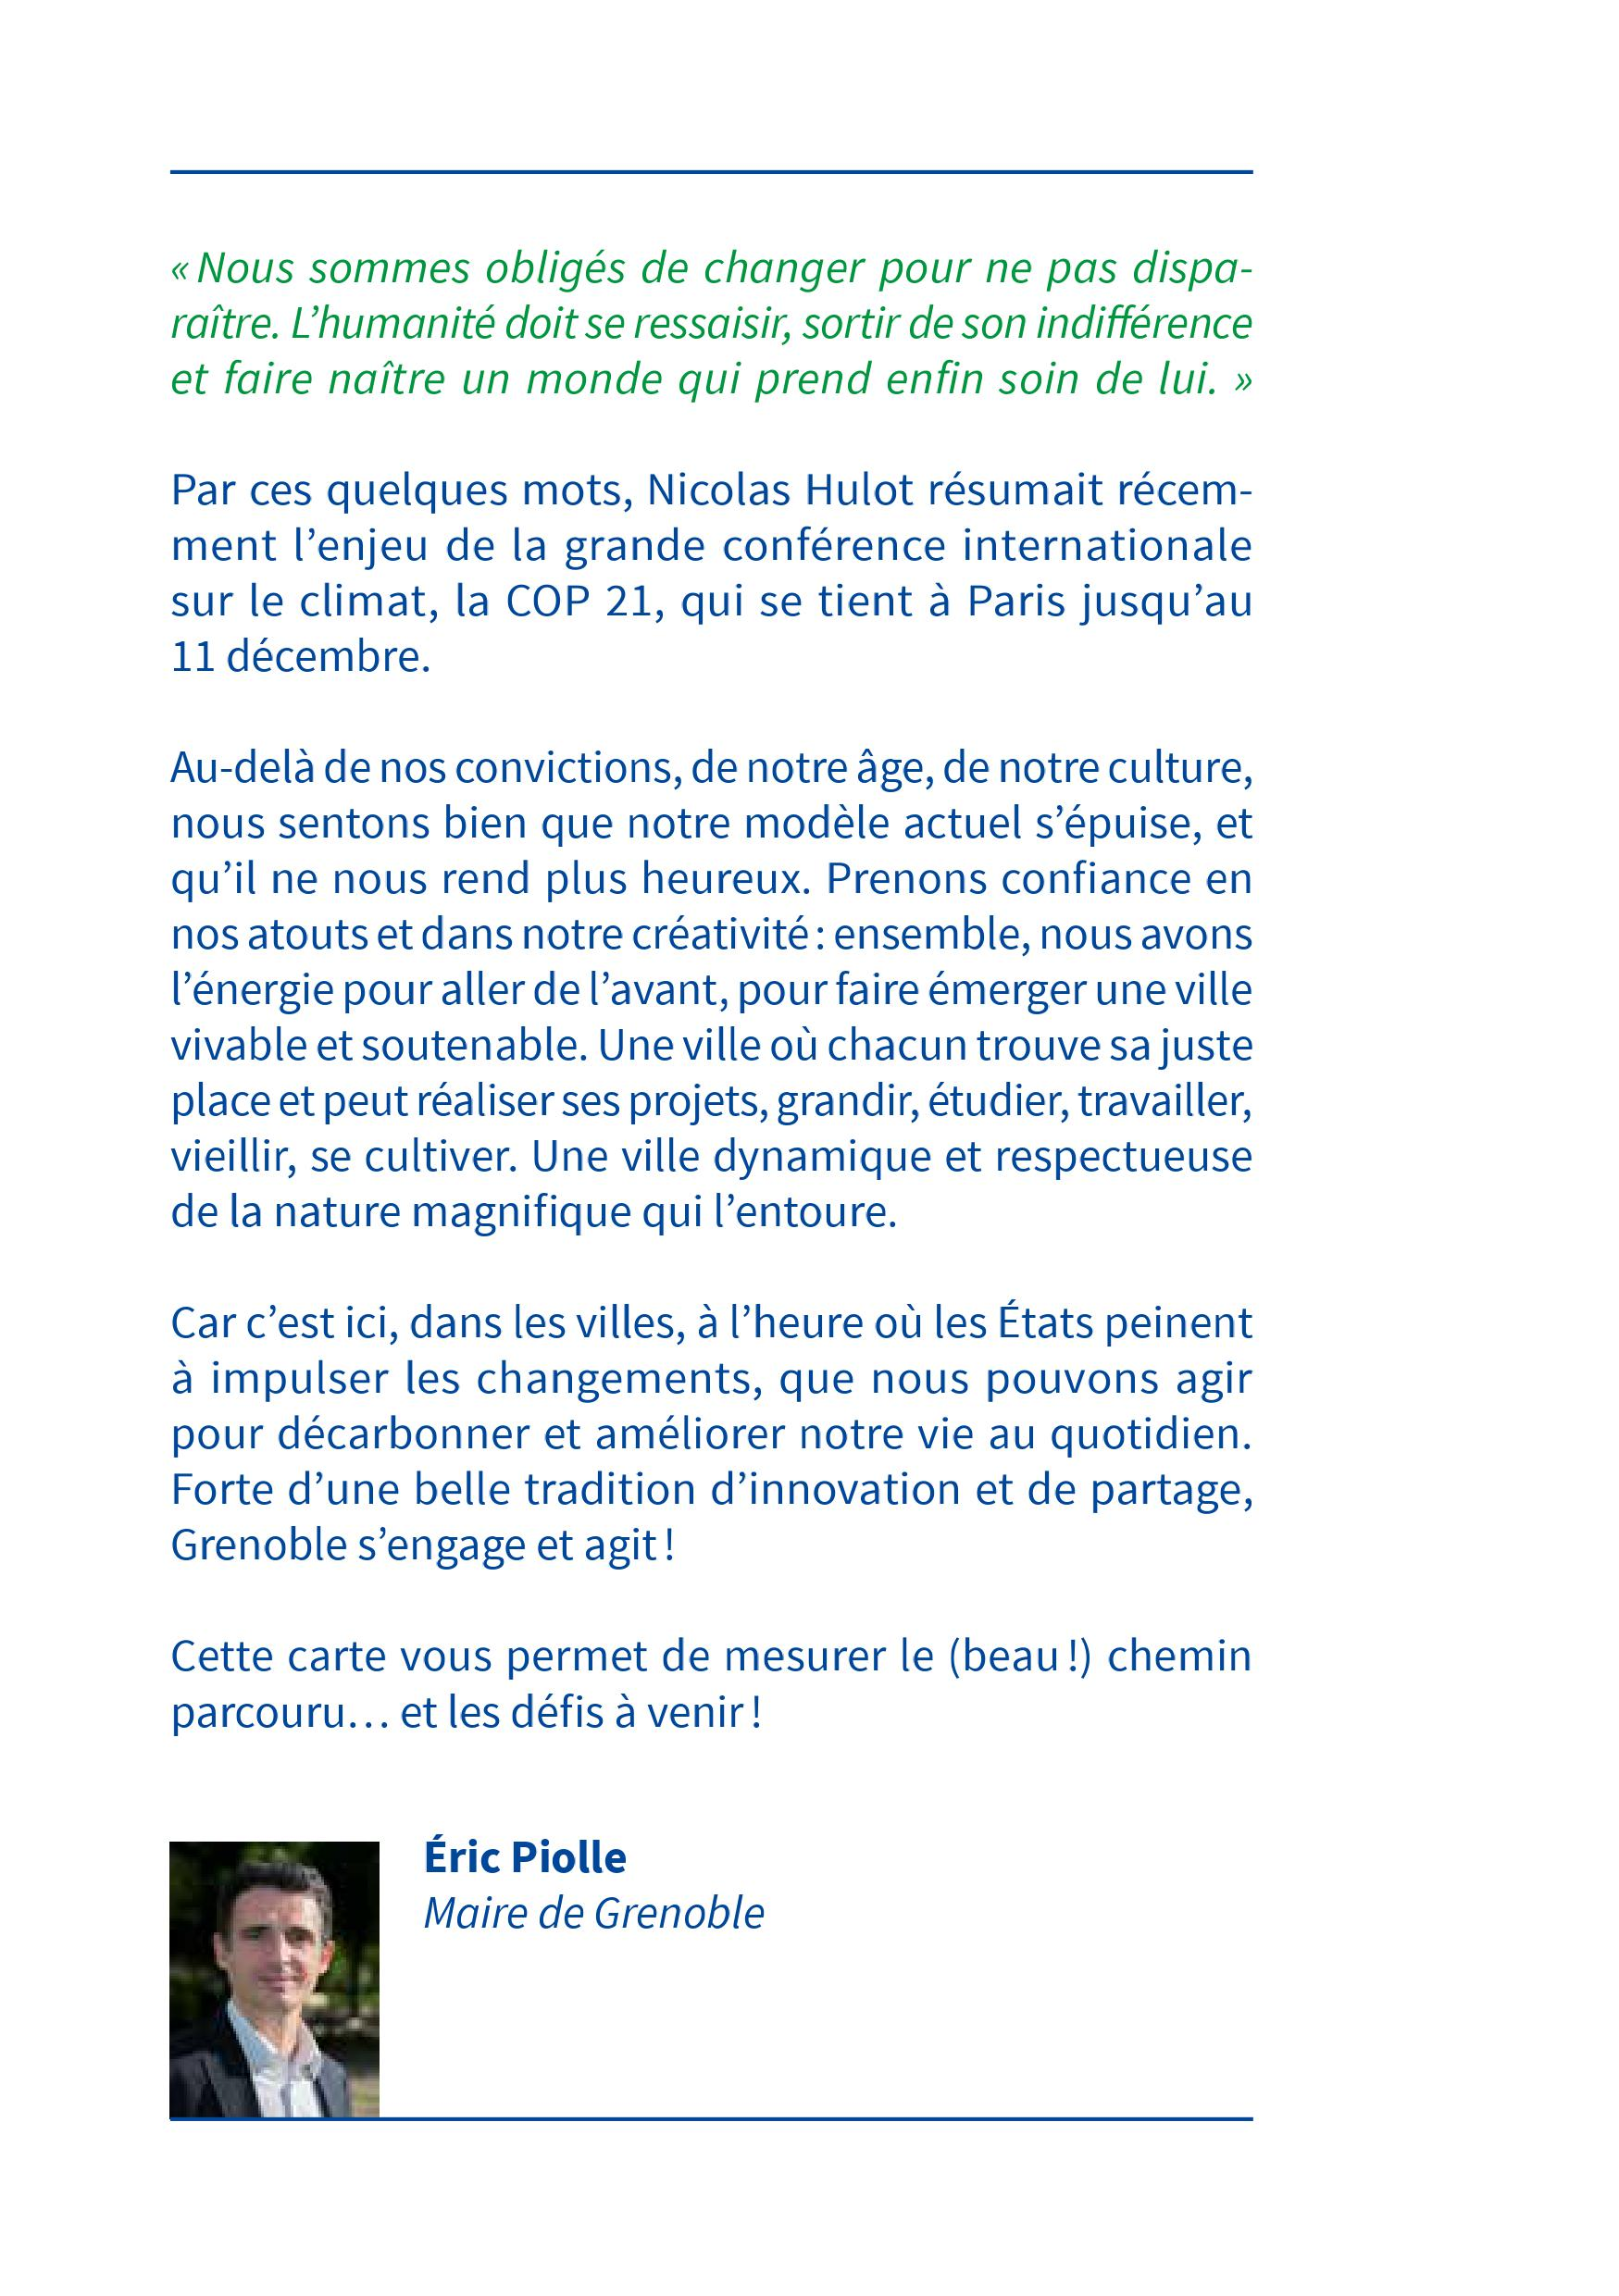 Grenoble s'engage COP21.1